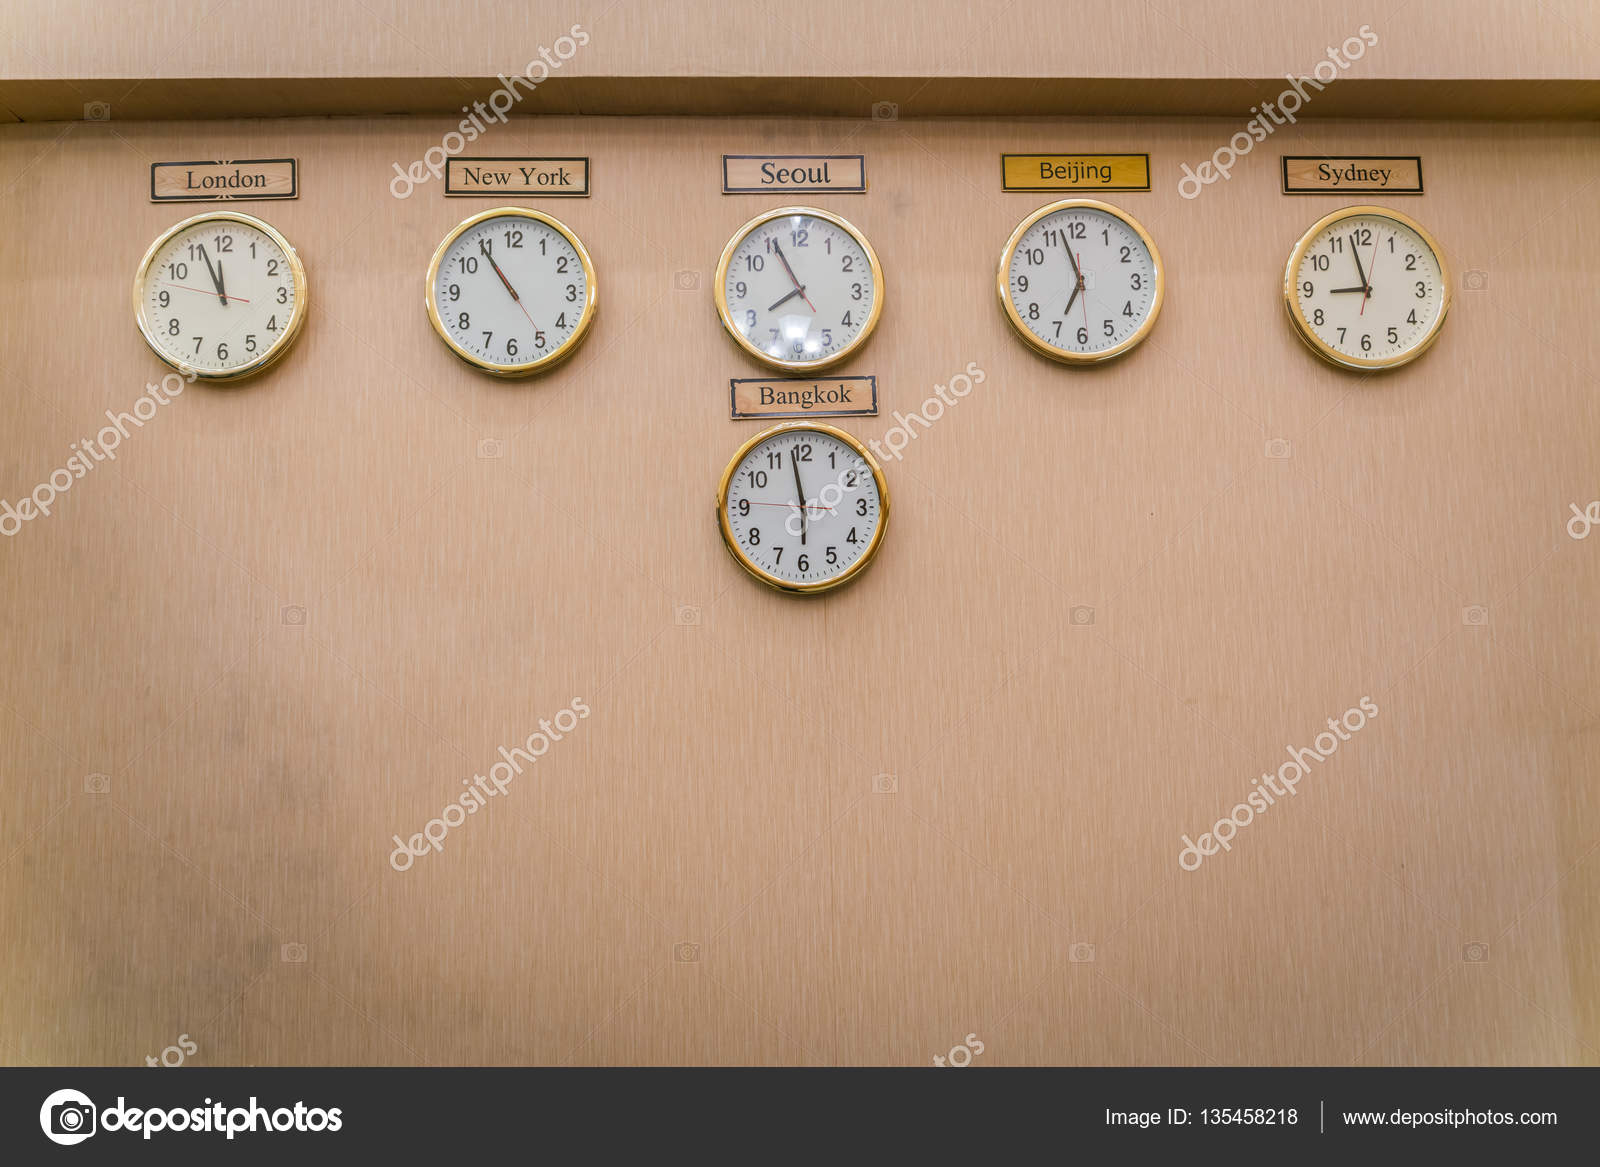 Clocks shows different time zones on old wall stock photo clocks shows different time zones on old wall sciox Image collections